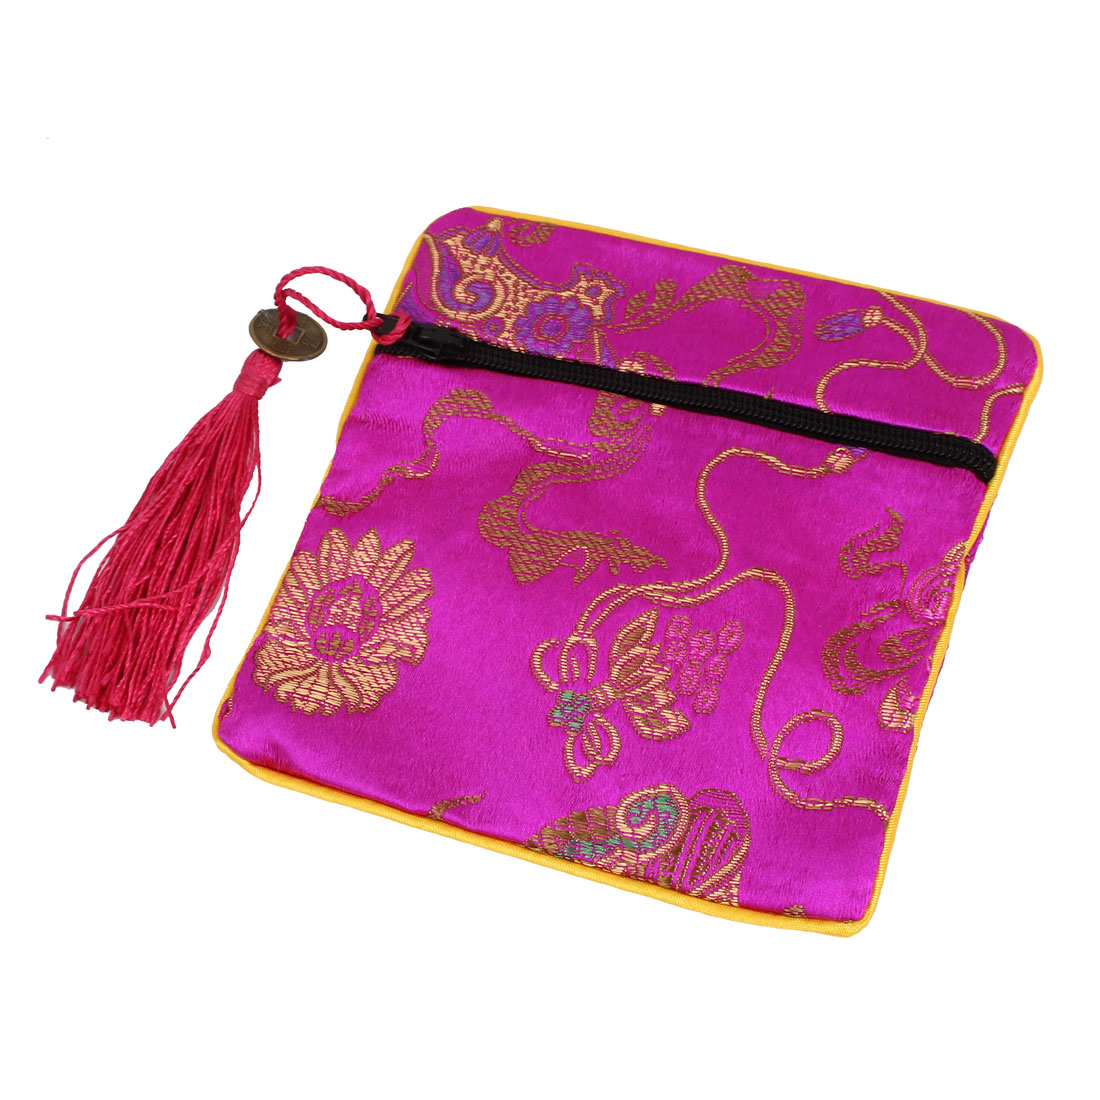 Tassel Pendant Zipper Closure Cosmetic Jewelry Gift Coin Bag Purse Pouch Fuchsia